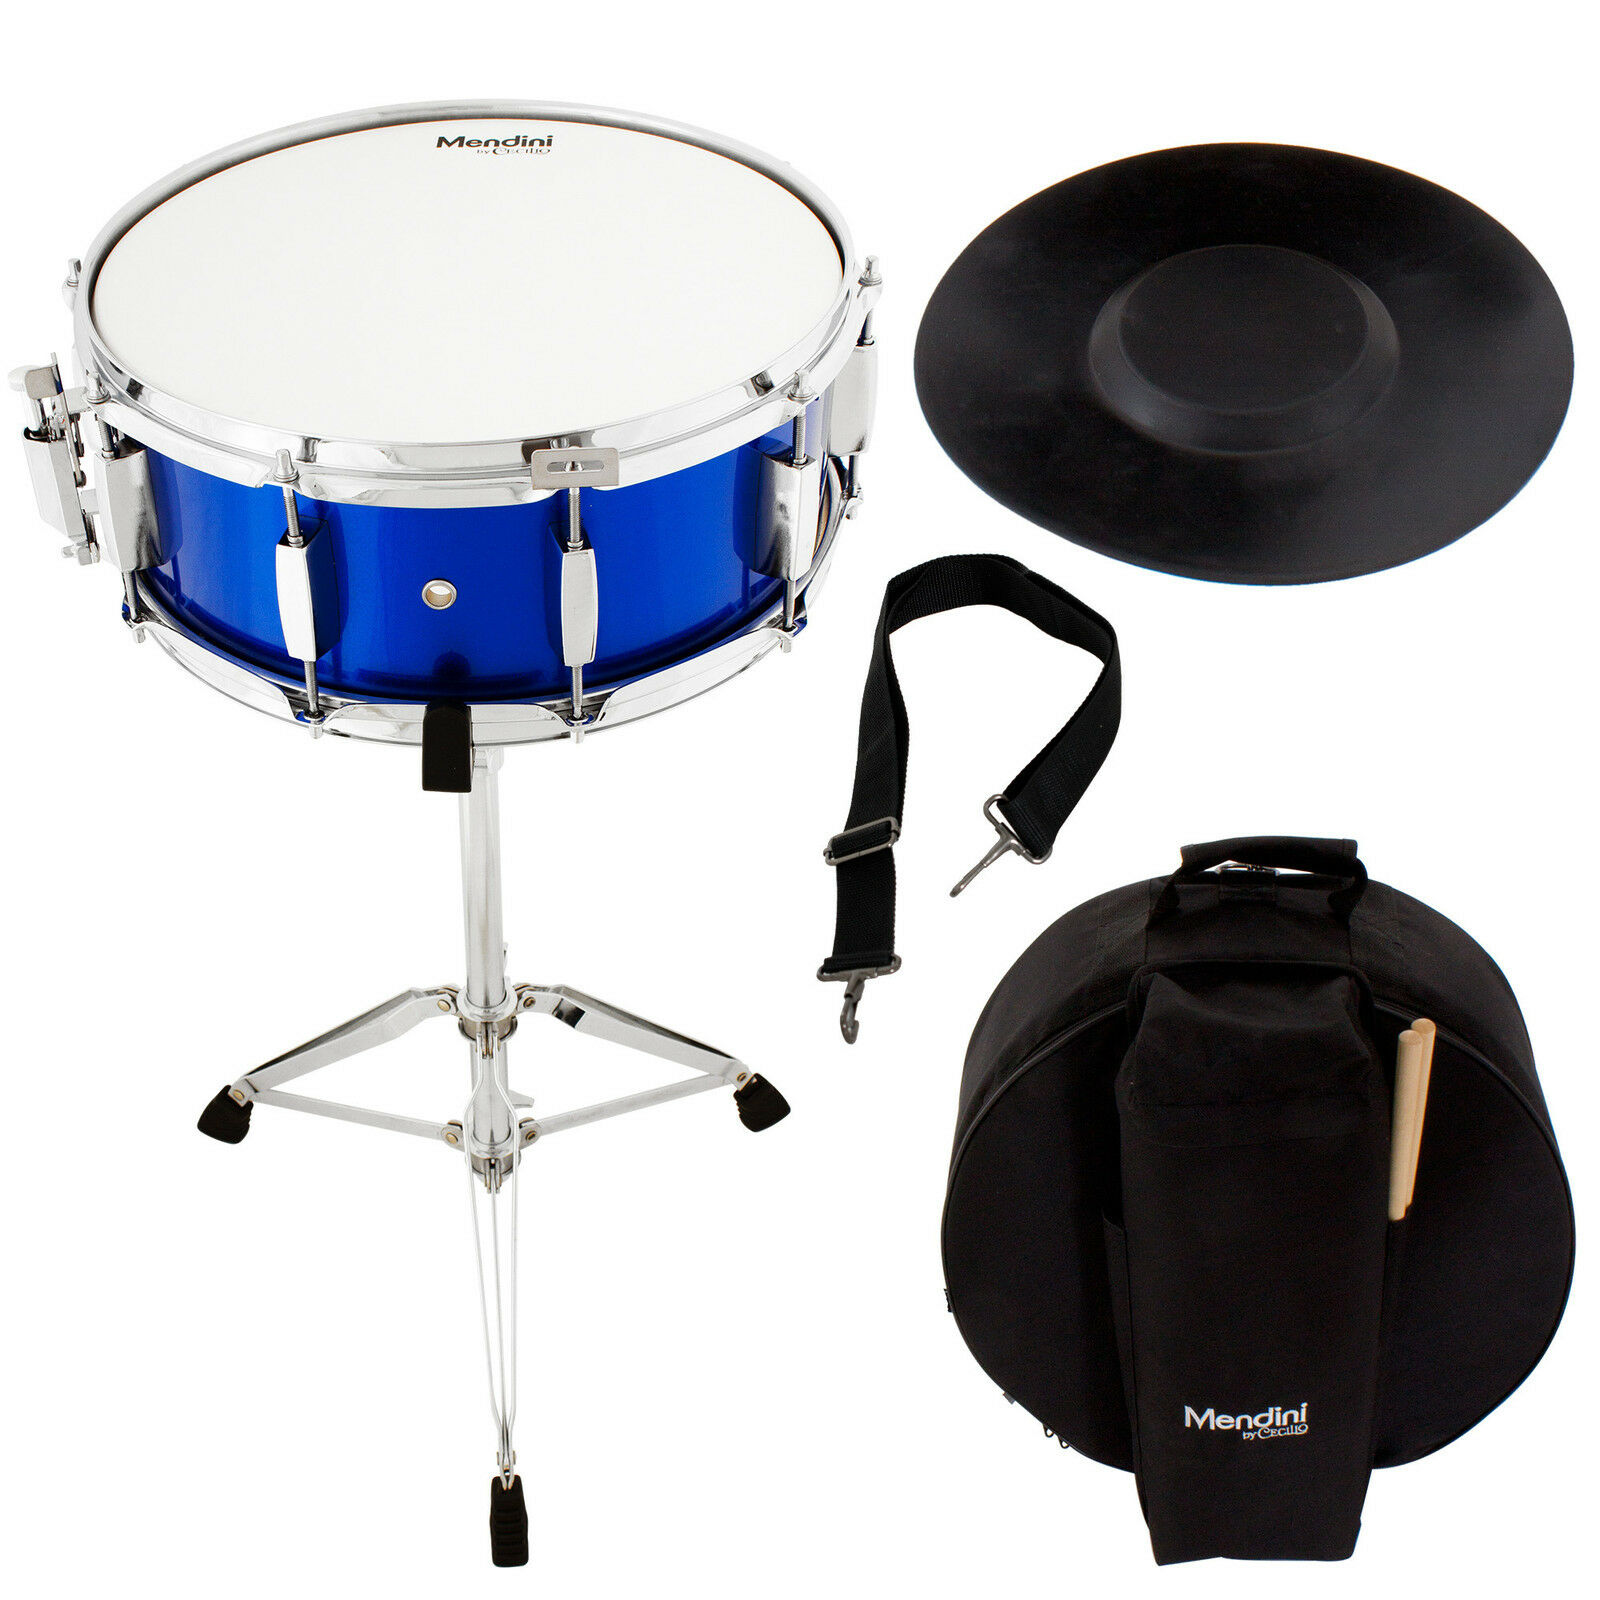 Mendini Student Blau Snare Drum Set mit Gig Bag Sticks Standpraxis Pad Kit